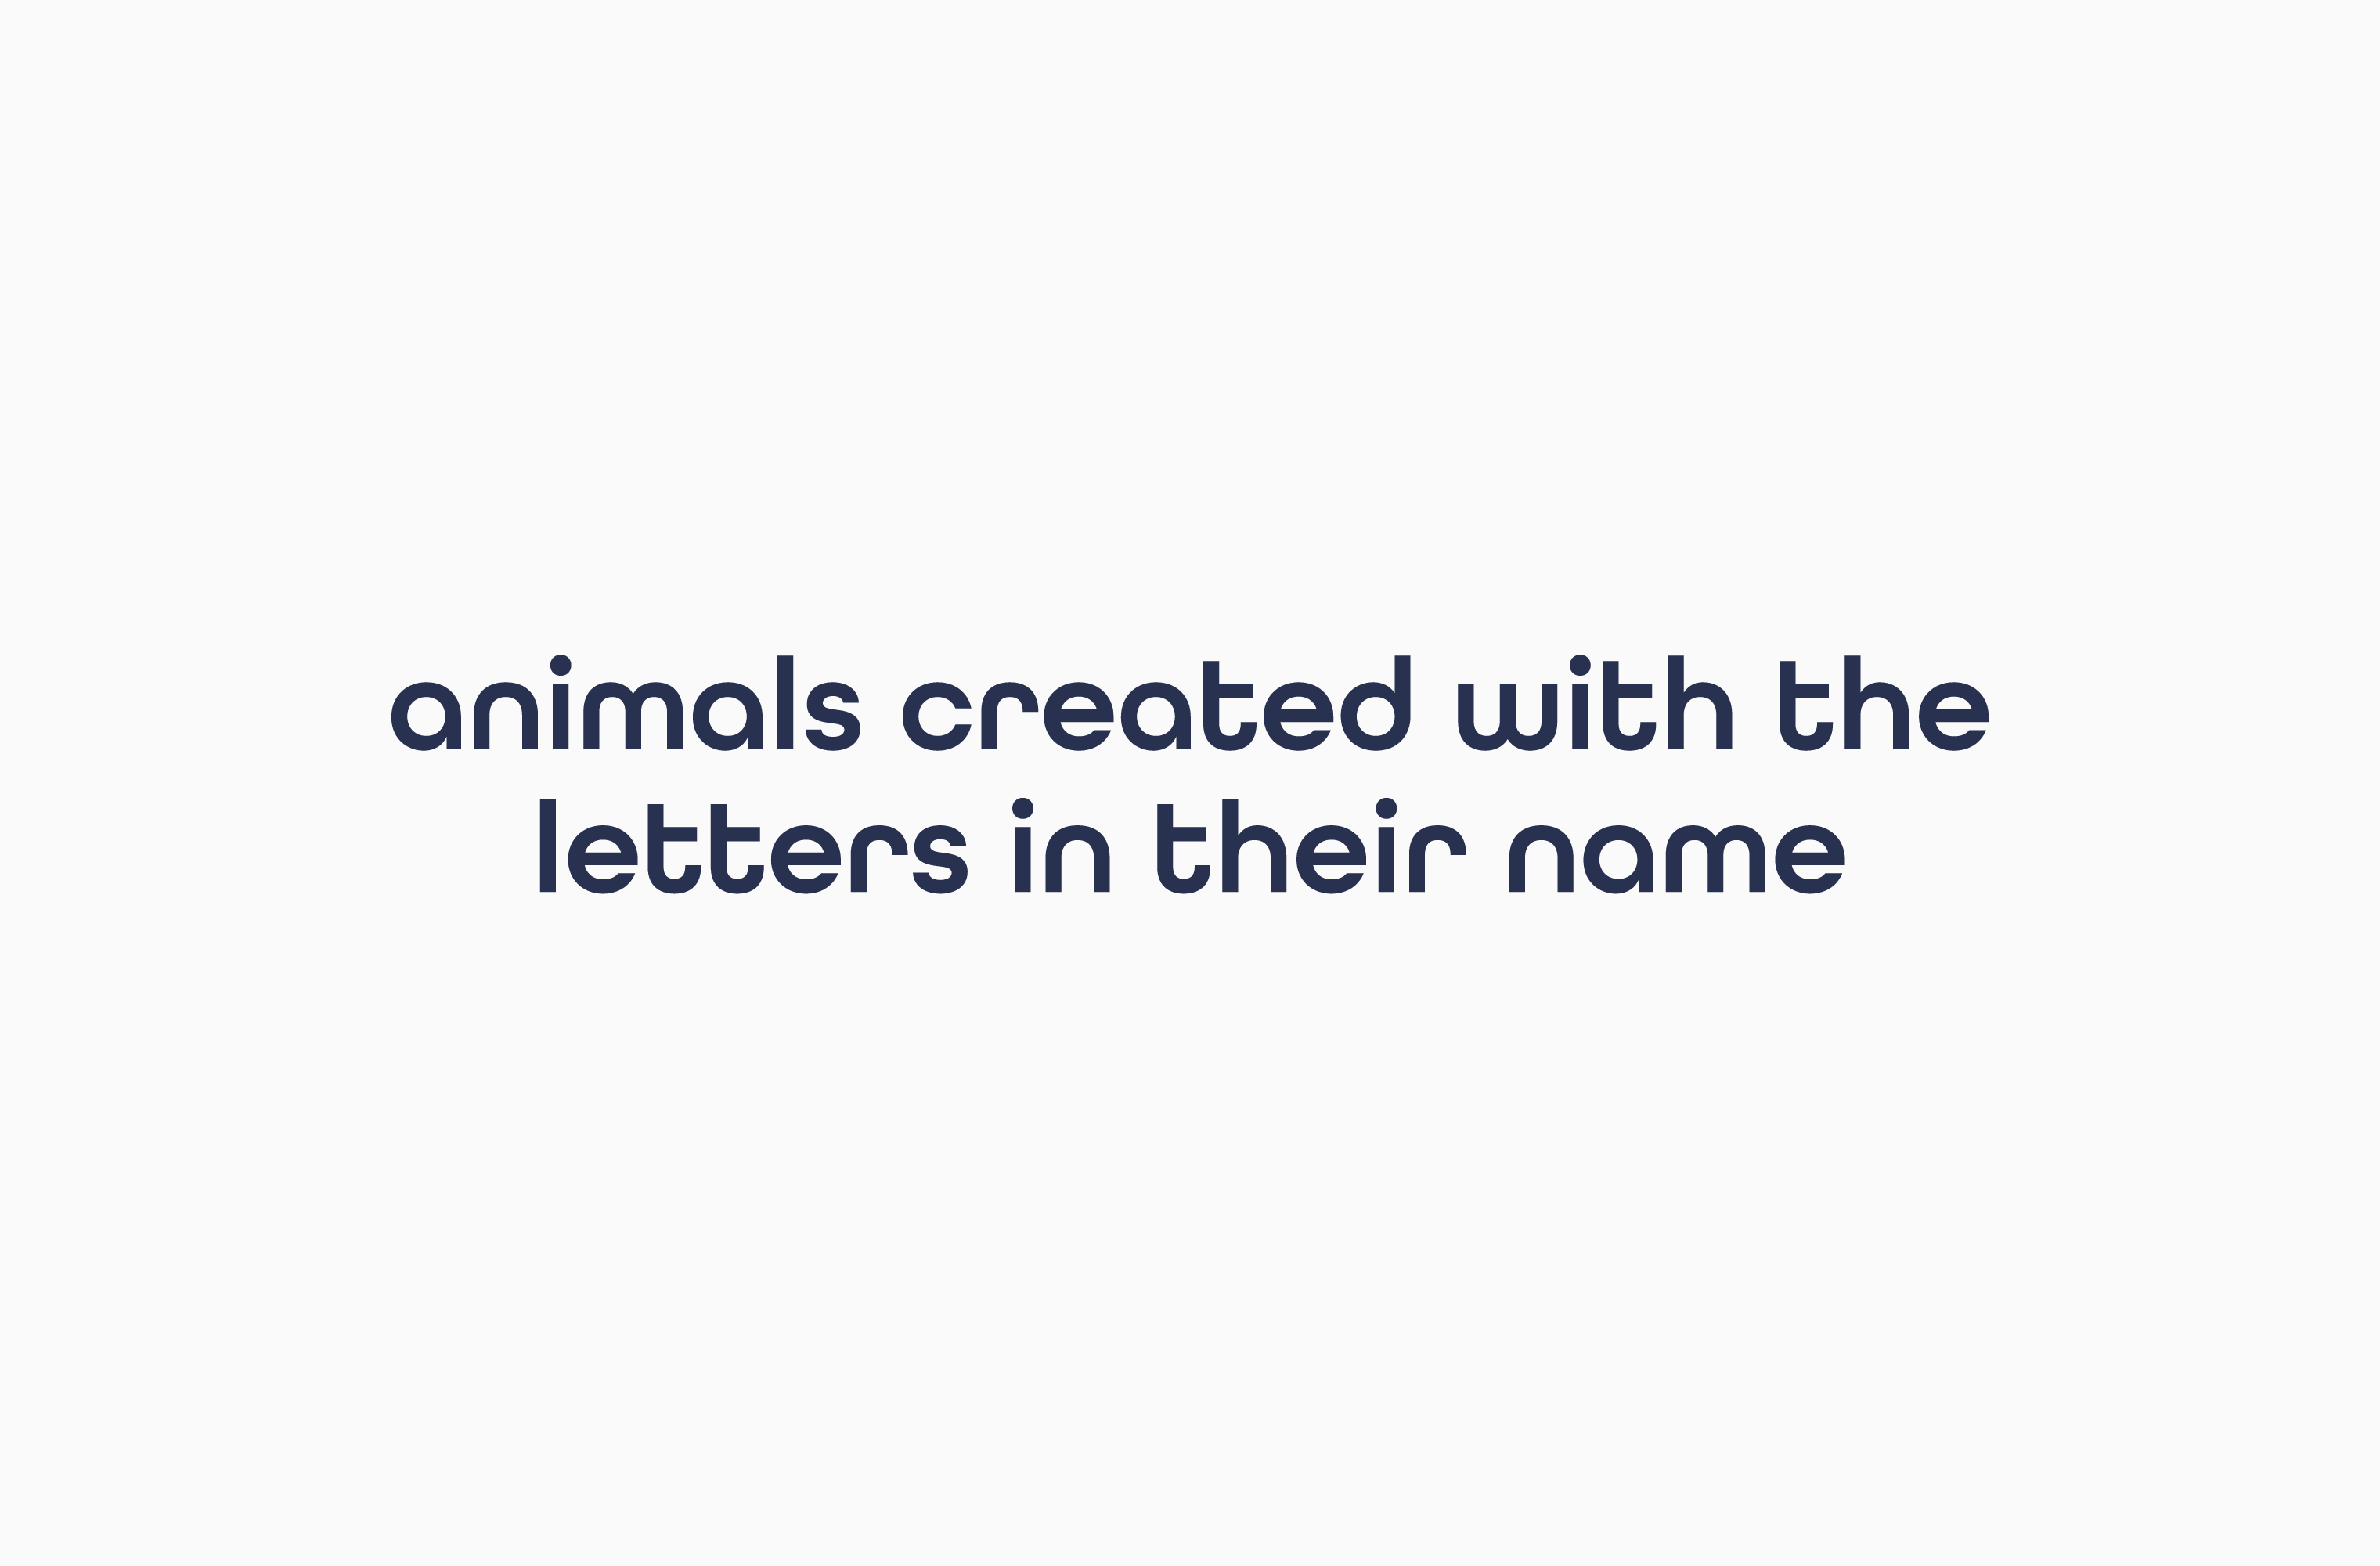 One-liner describing Word Animals as 'animals created with the letters in their name